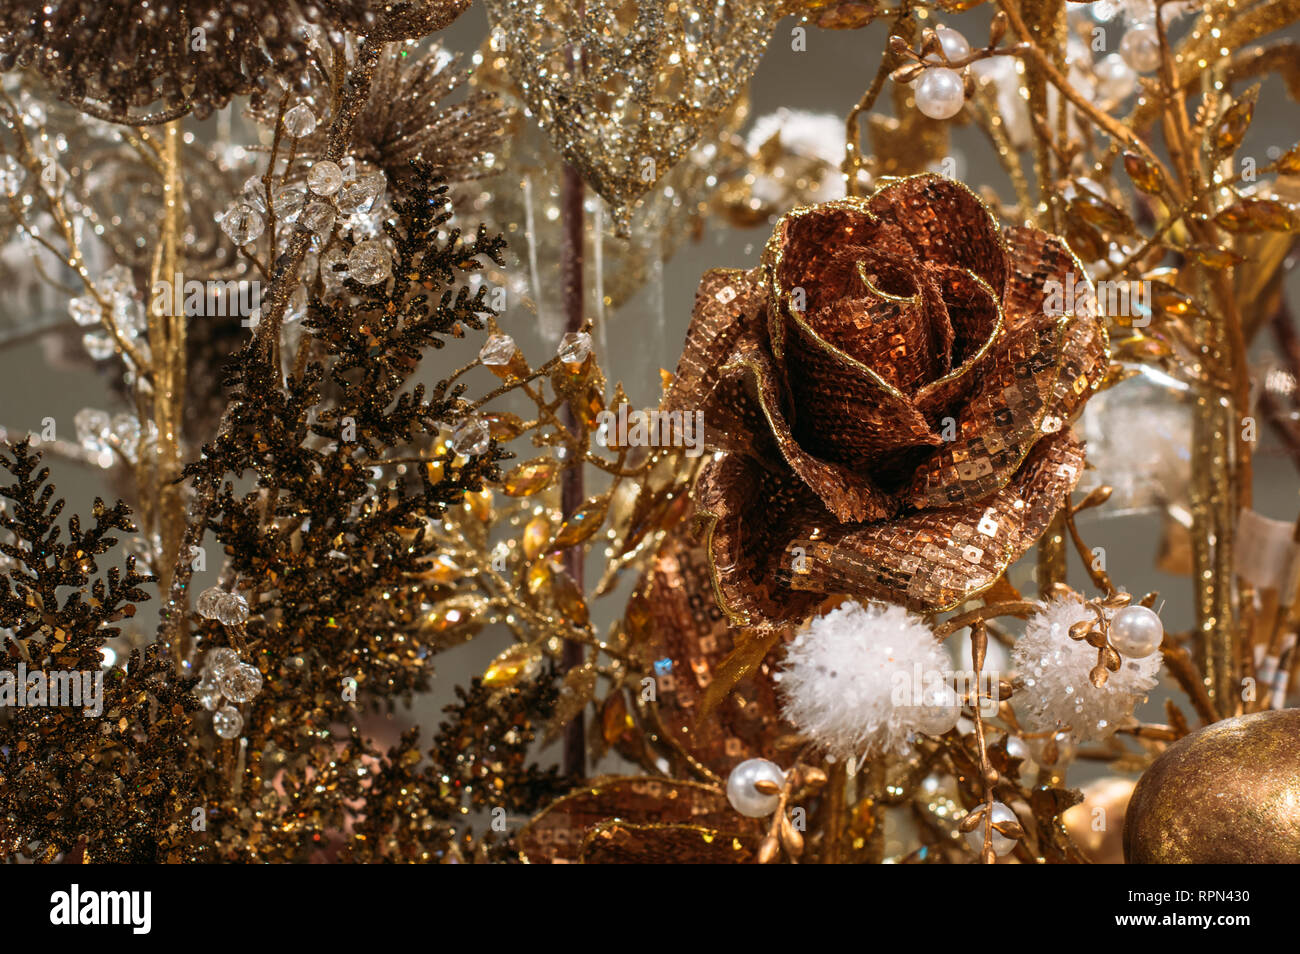 Rose Christmas Tree Decorations All In One Color Yellow And Gold Background Stock Photo Alamy